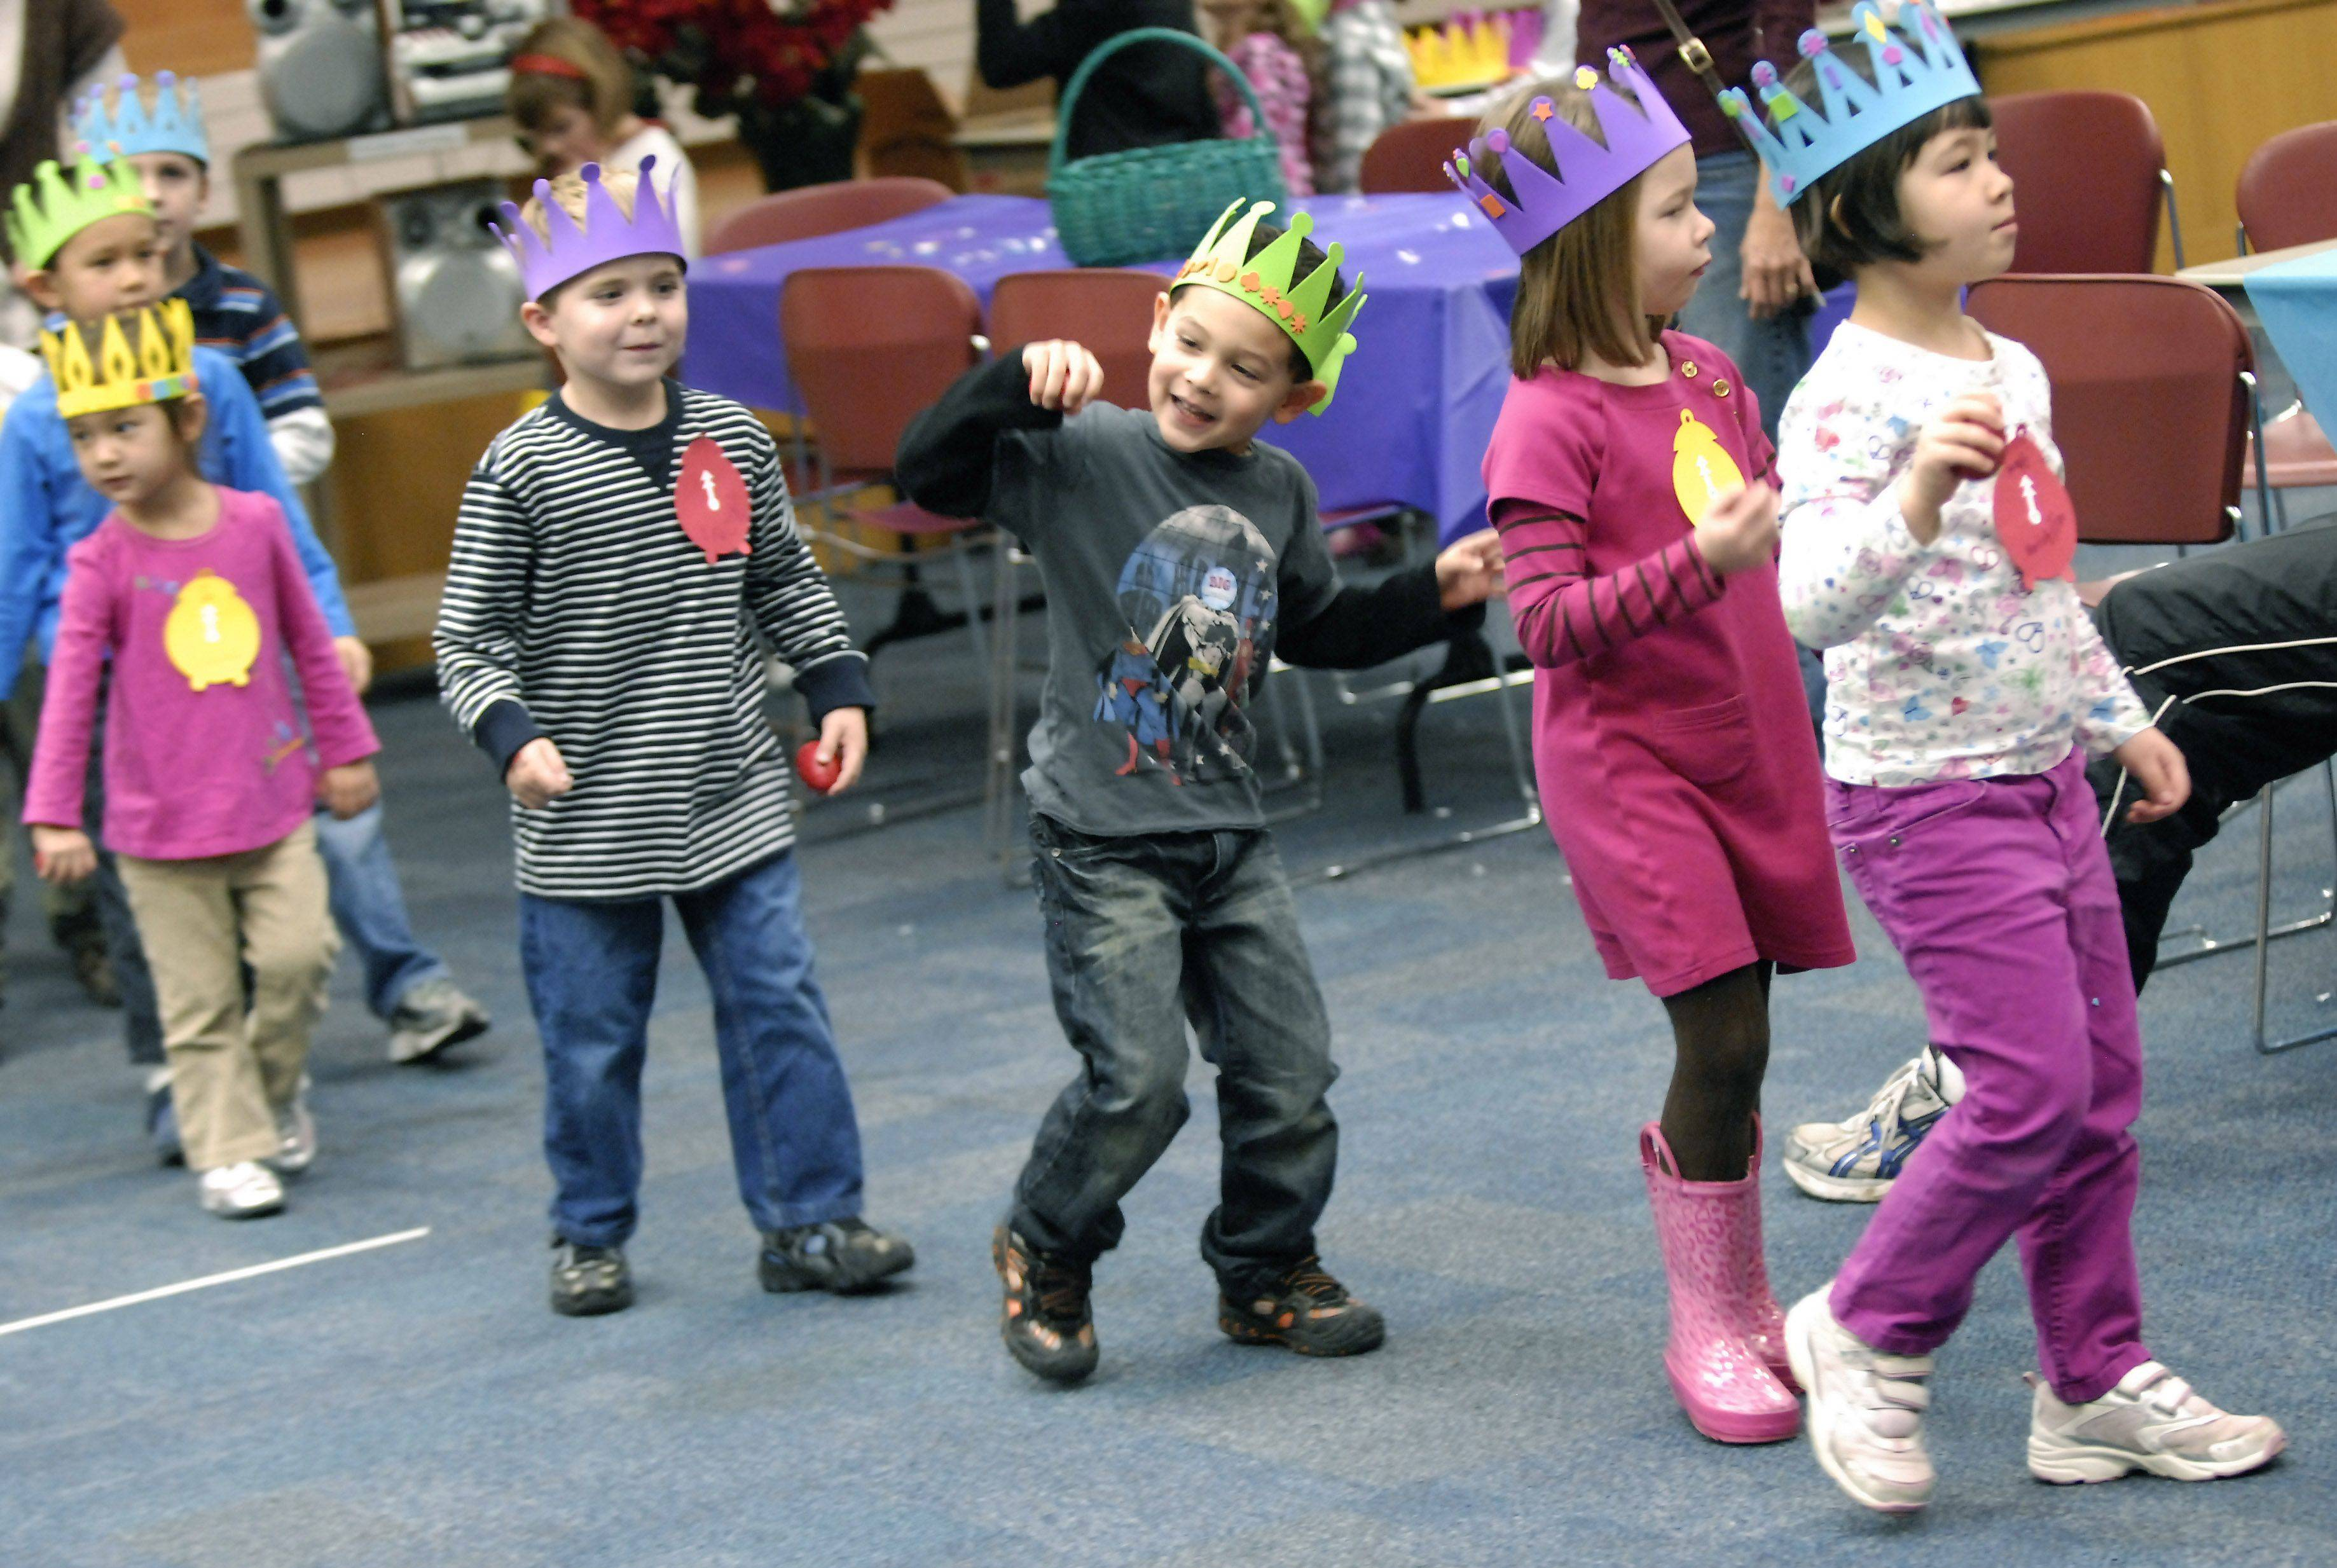 Kids dance in a conga line with Connor Cruz, center, really getting into the spirit of things Friday during the Almost New Year's party at the Arlington Heights Memorial Library.